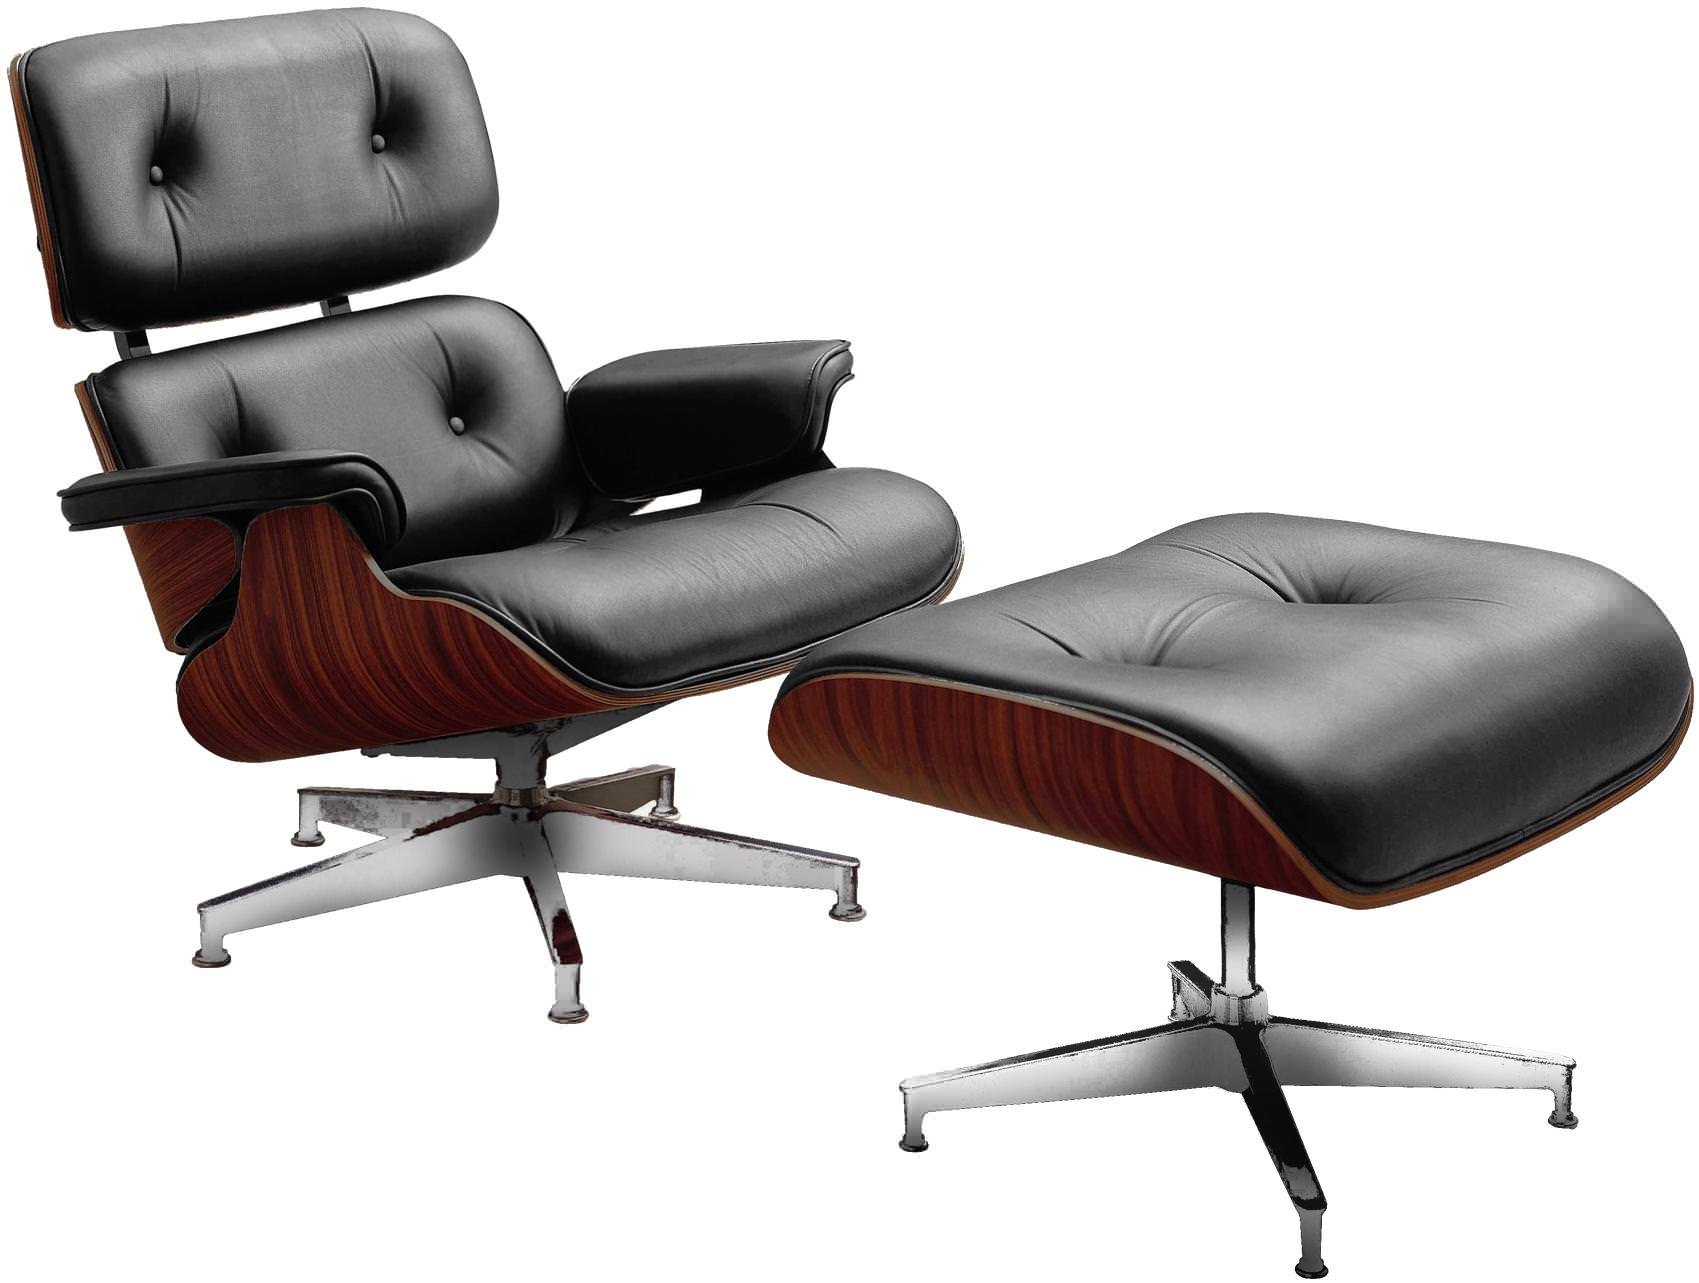 Eames Lounge Chair For Sale